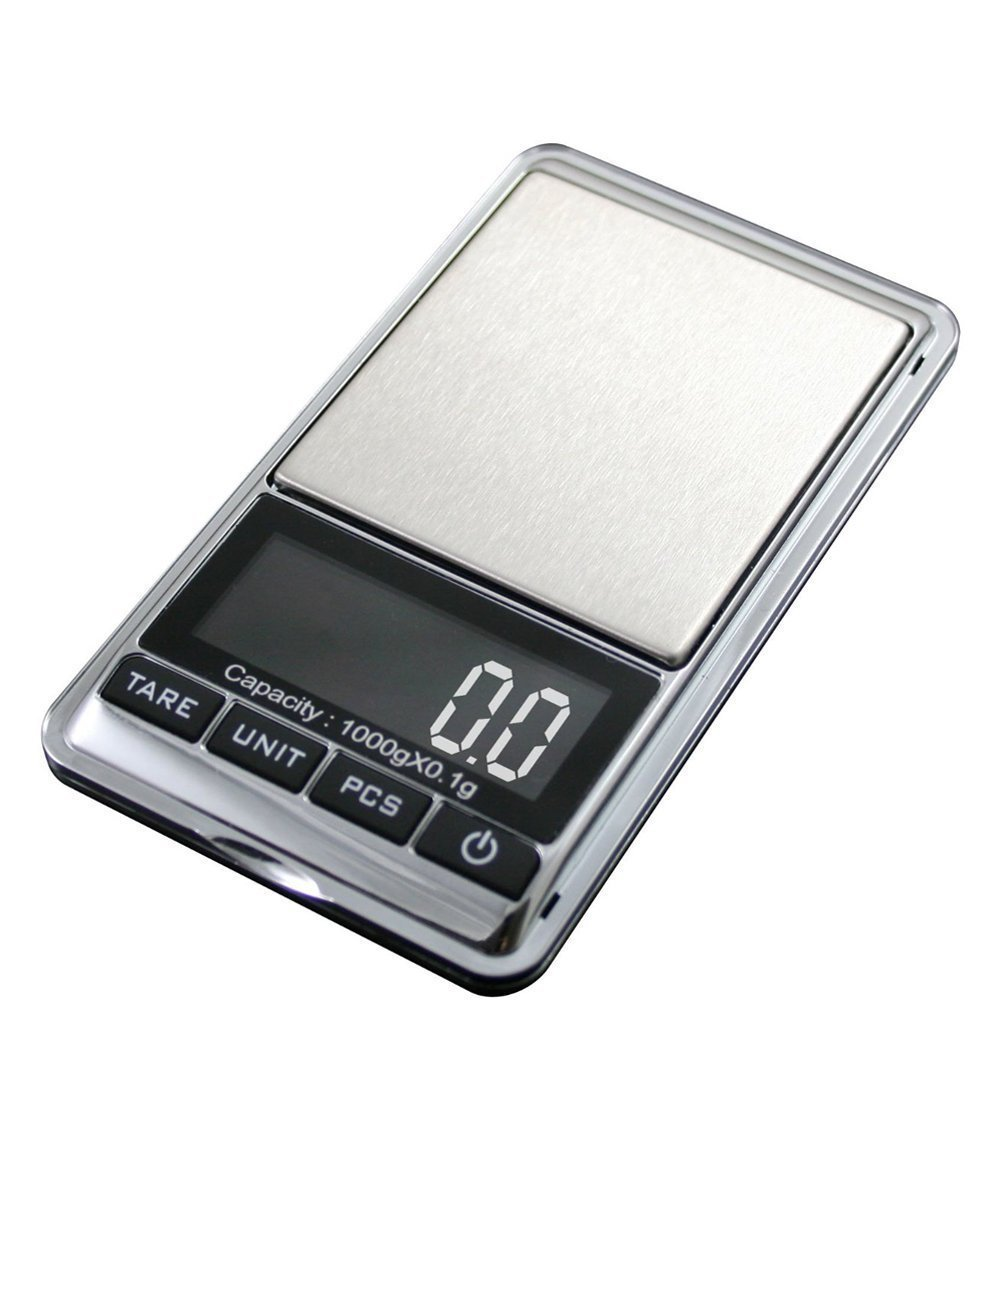 0.1g 1000g Gram Digital Electronic Balance Weigh Scale for Weighing Gold Jewelry gems Herbs